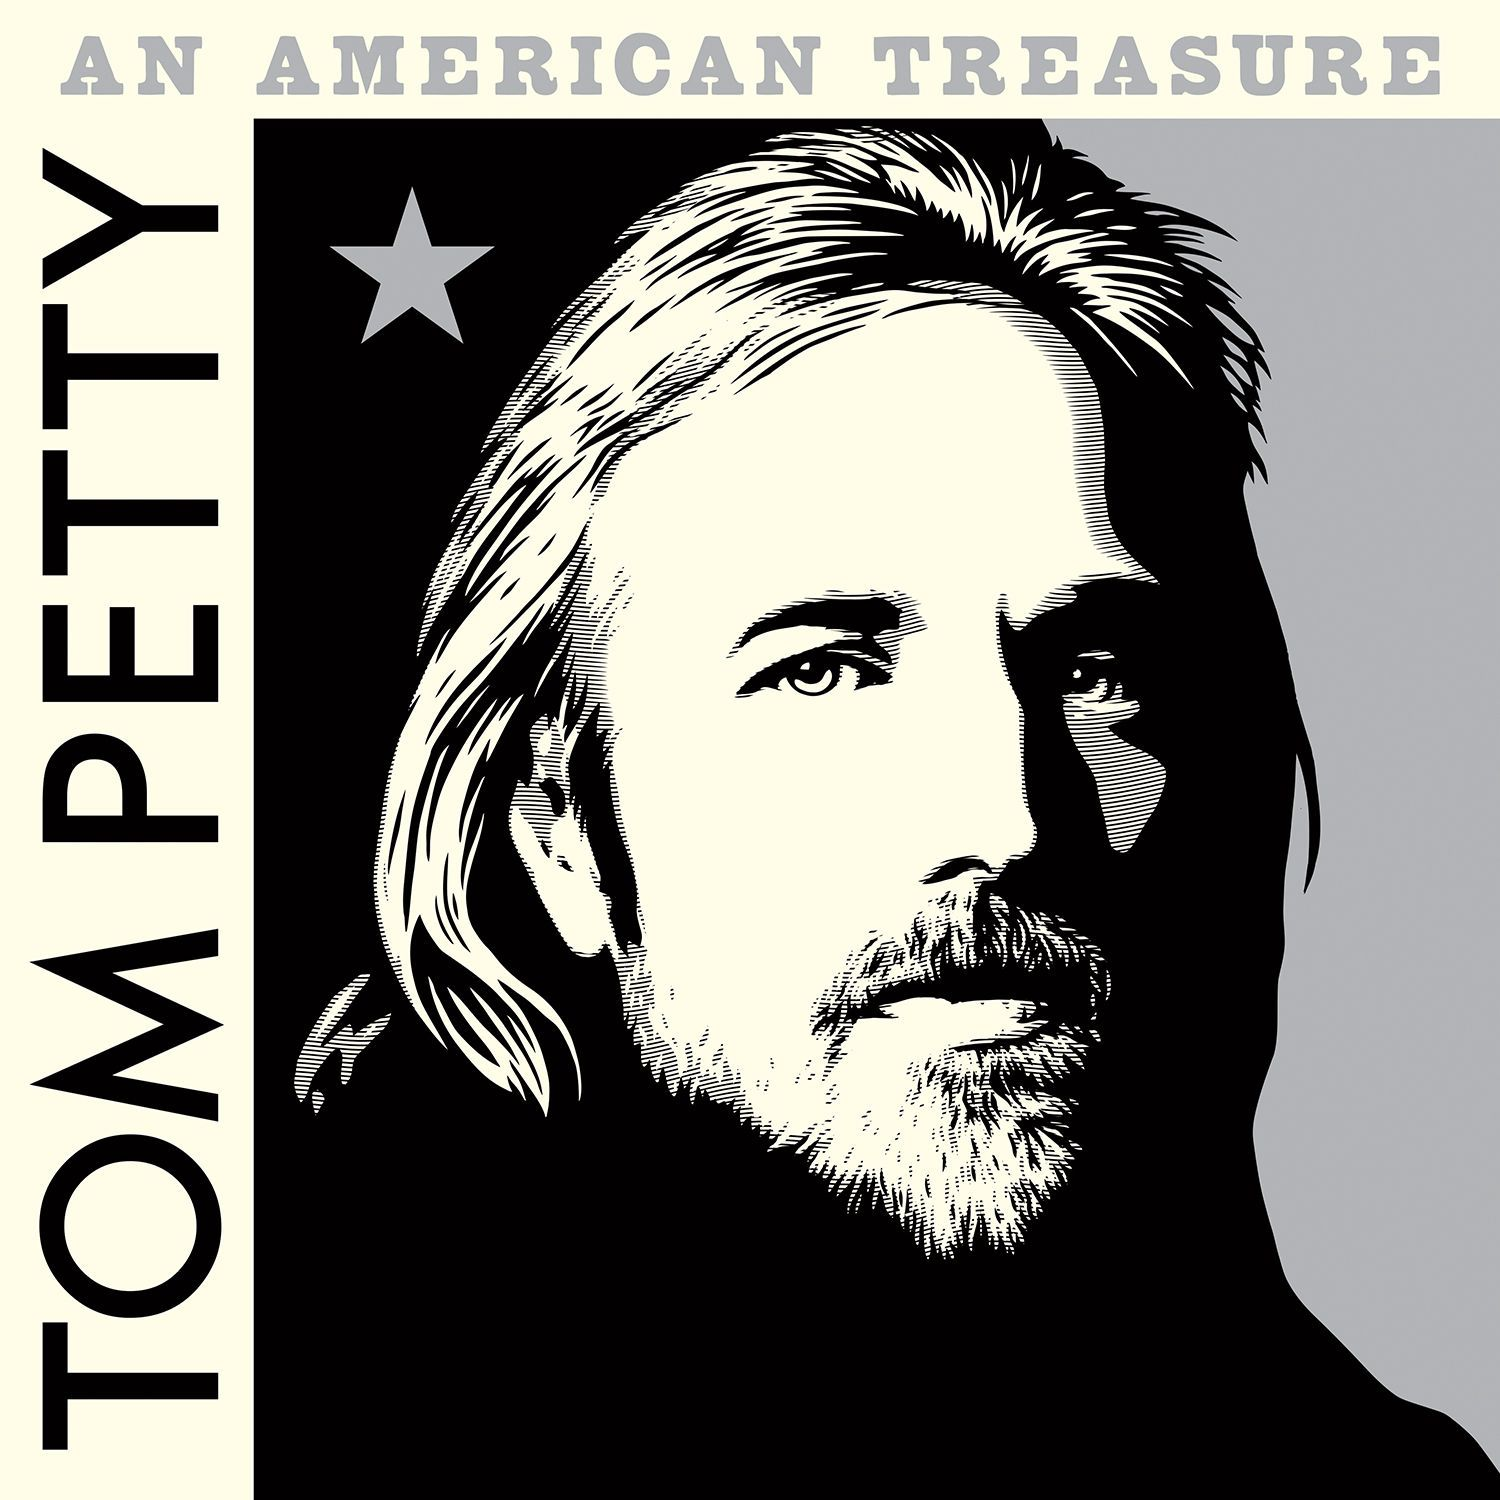 Tom Petty - An American Treasure album cover